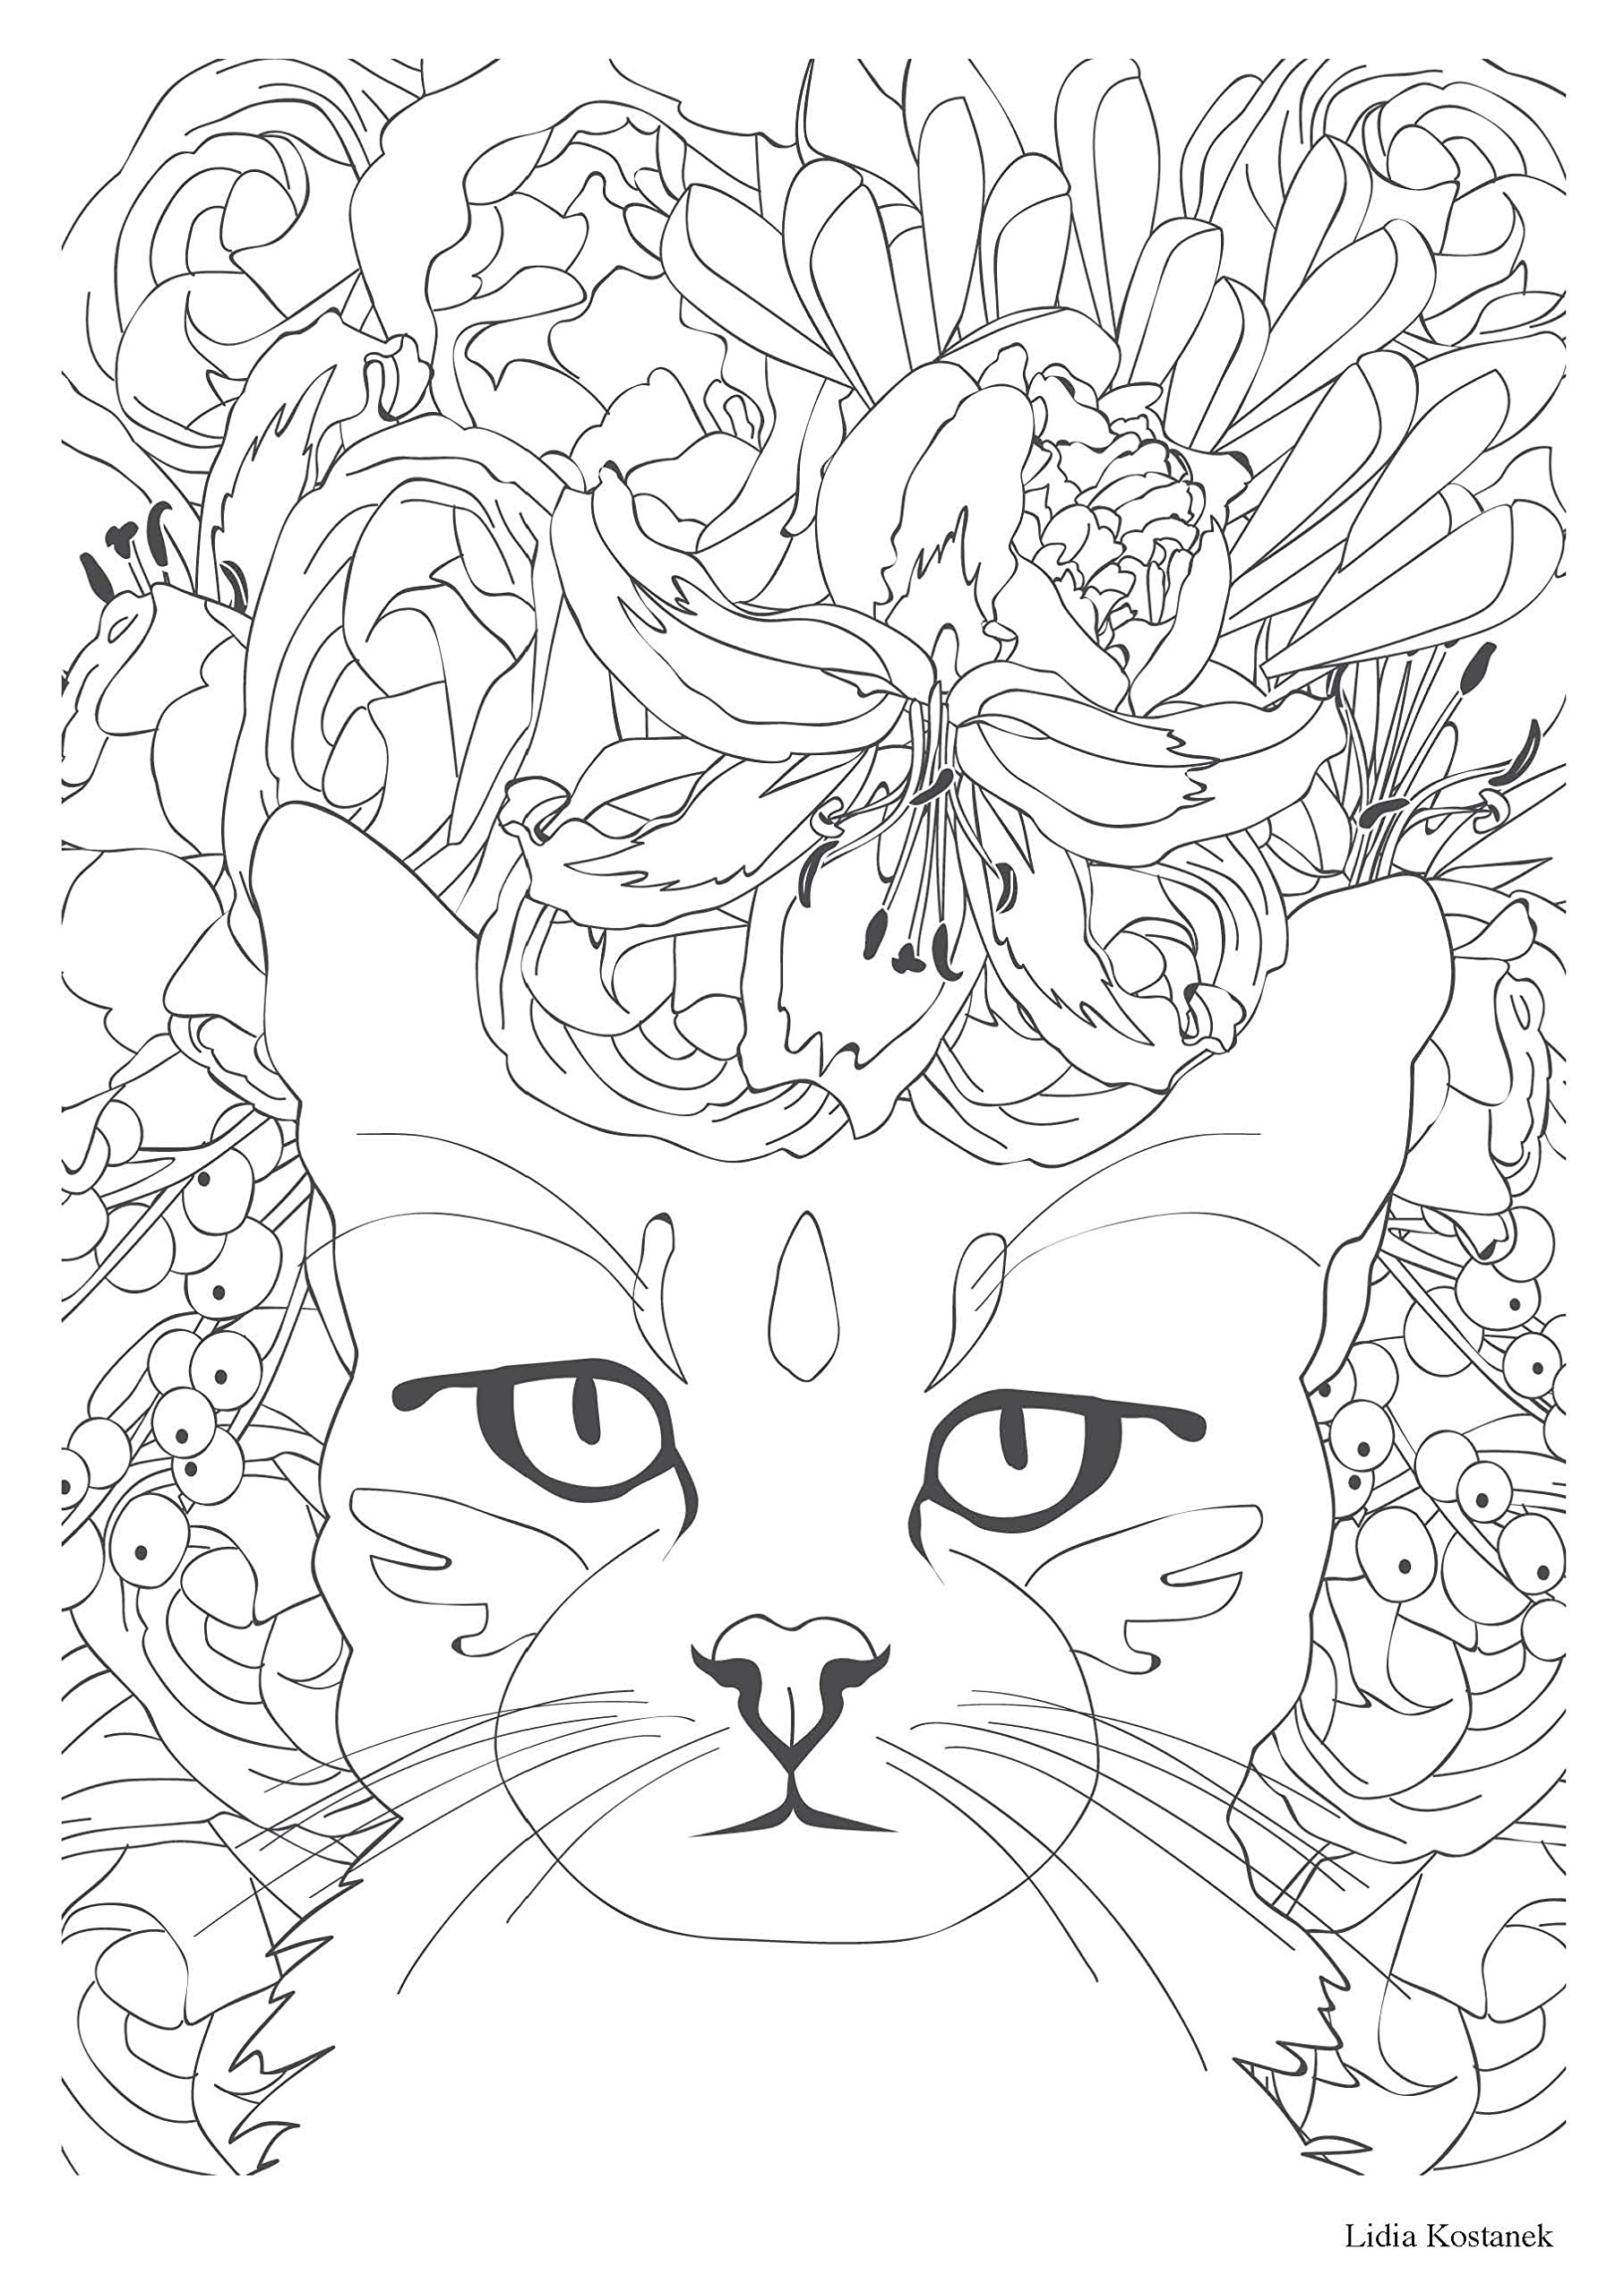 art therapie chat therapie 100 coloriages anti stress french edition collectif hachette 9782010090981 amazoncom books